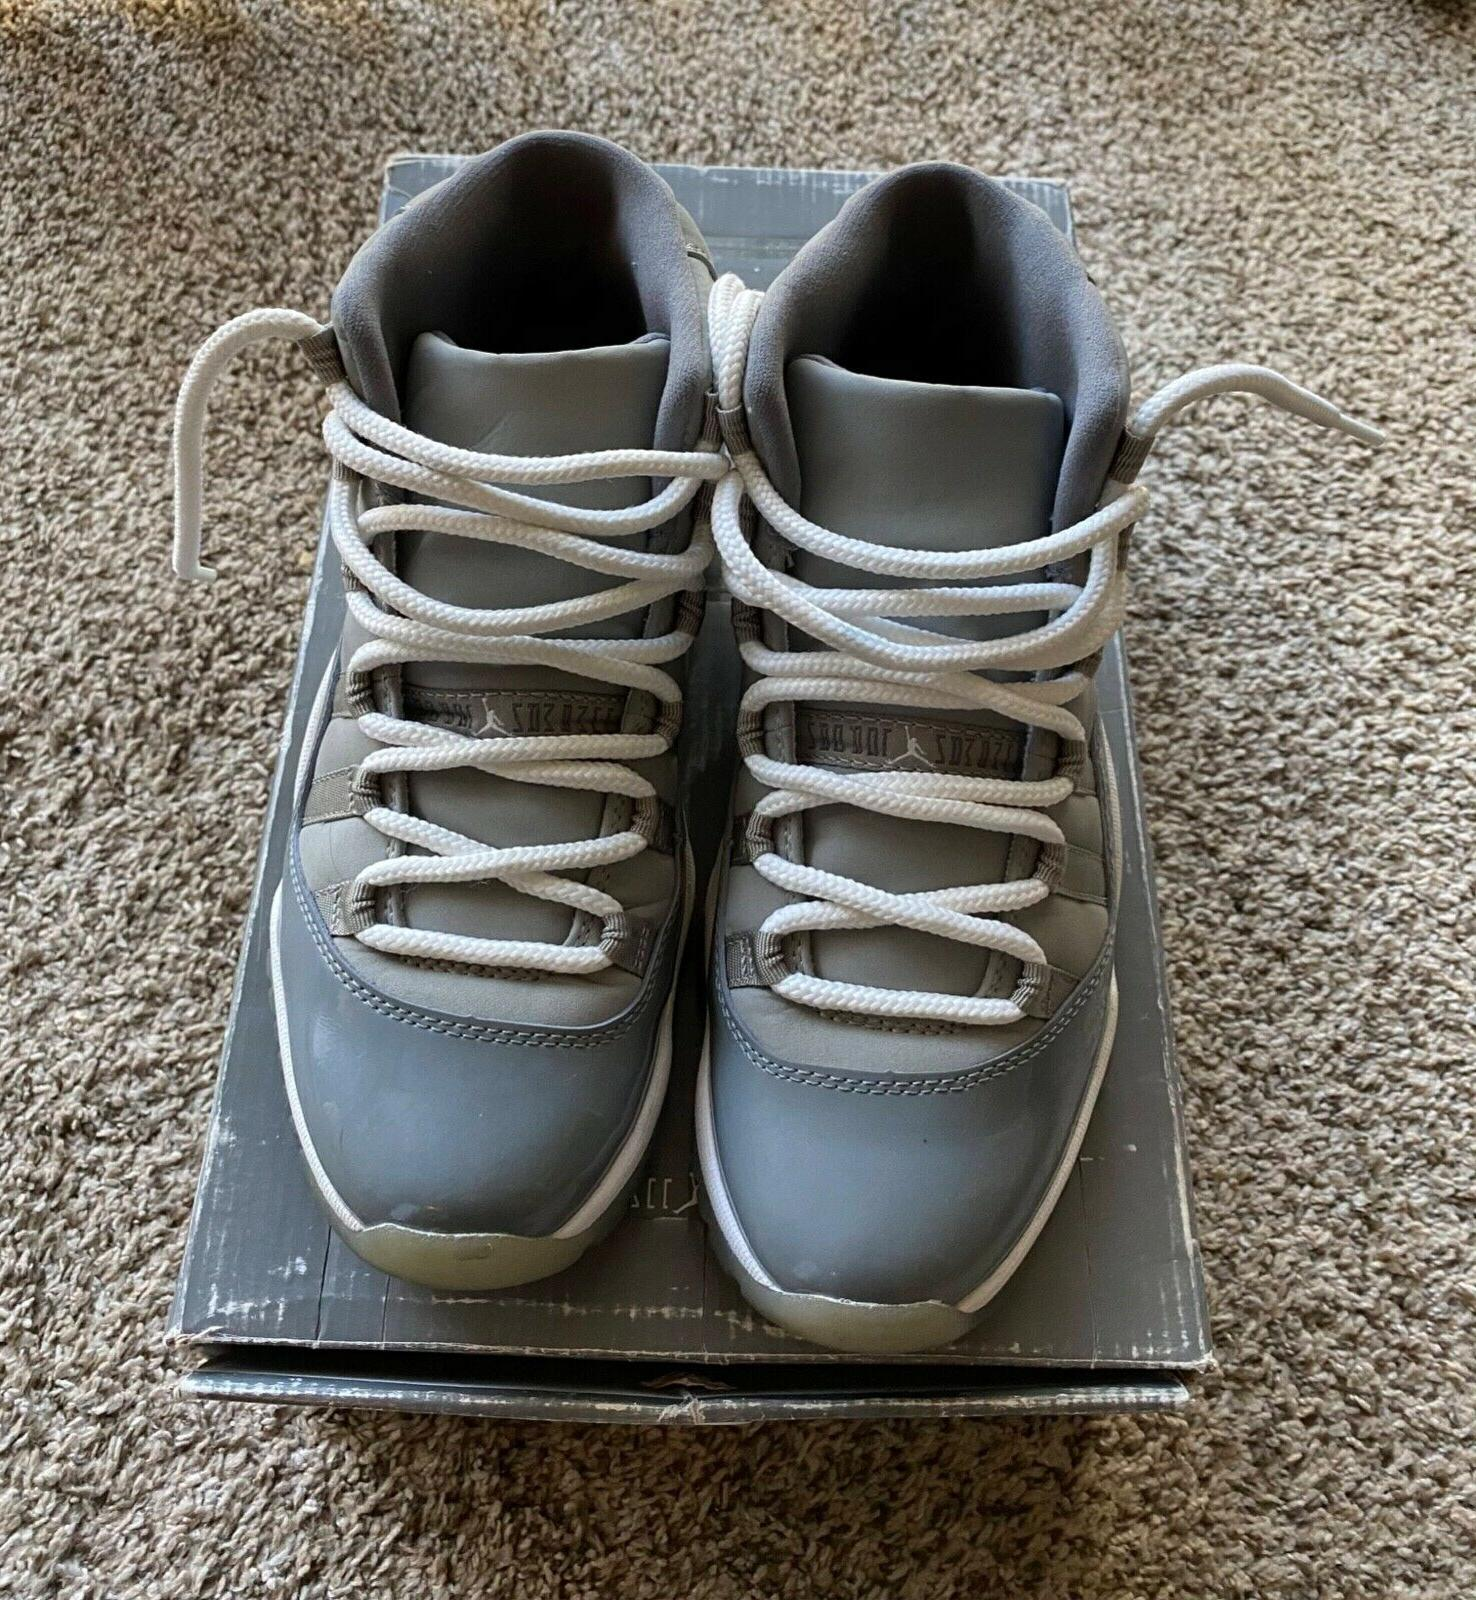 Air 11 retro 2010 Size 7.5 001Great Condition!